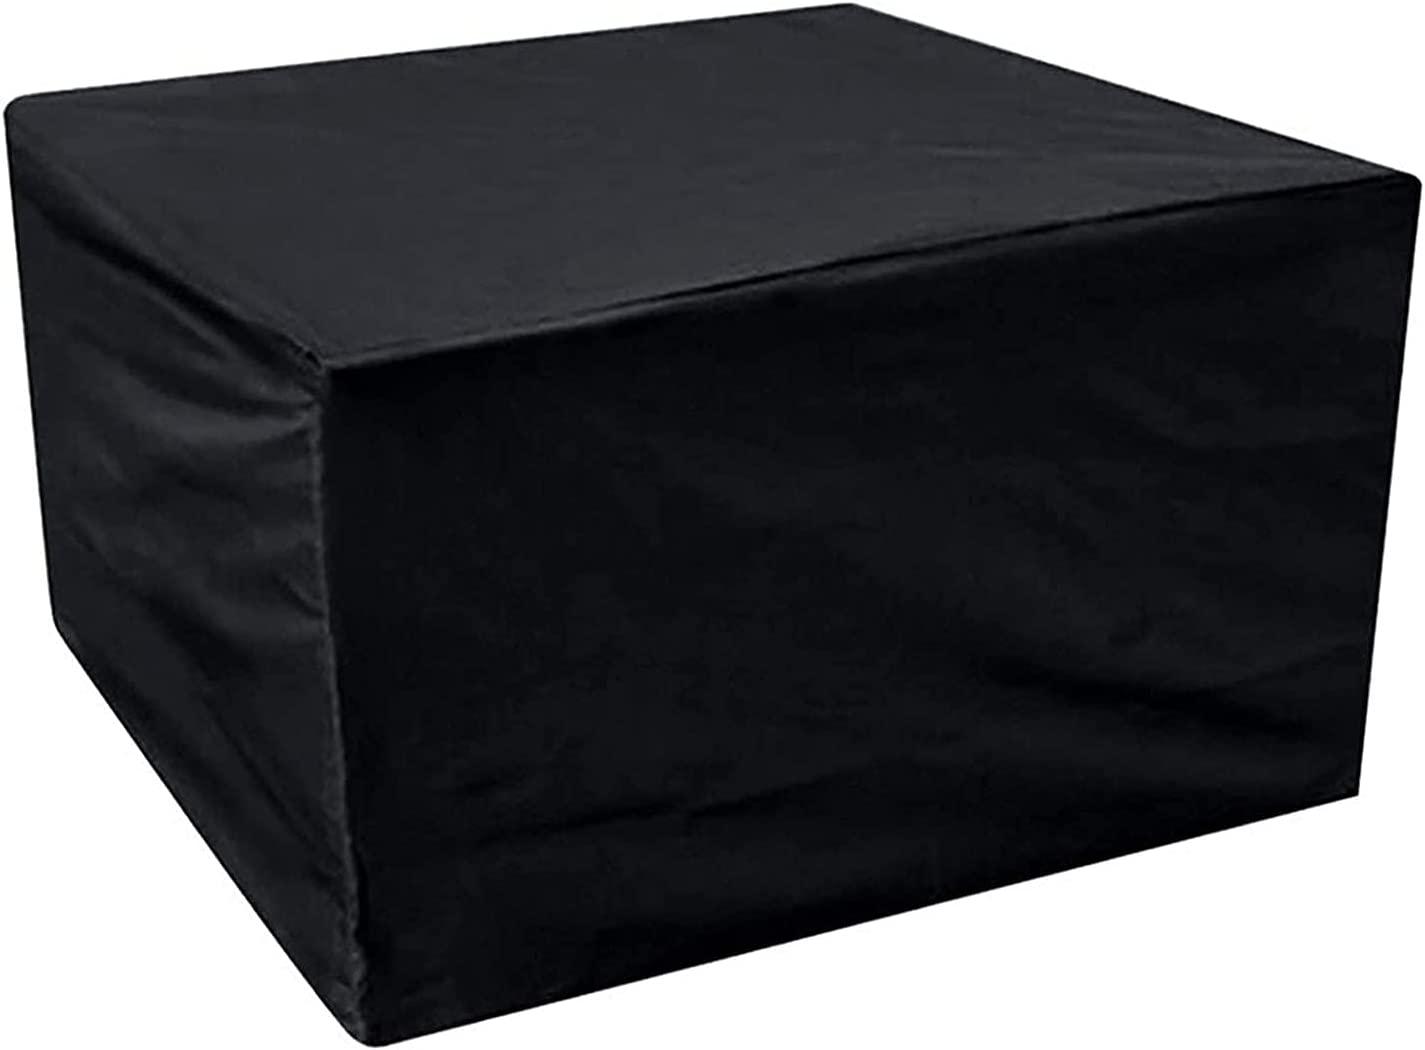 AWSAD Fees free SEAL limited product Garden Furniture Covers Waterproof Outdoor Table Cov Patio